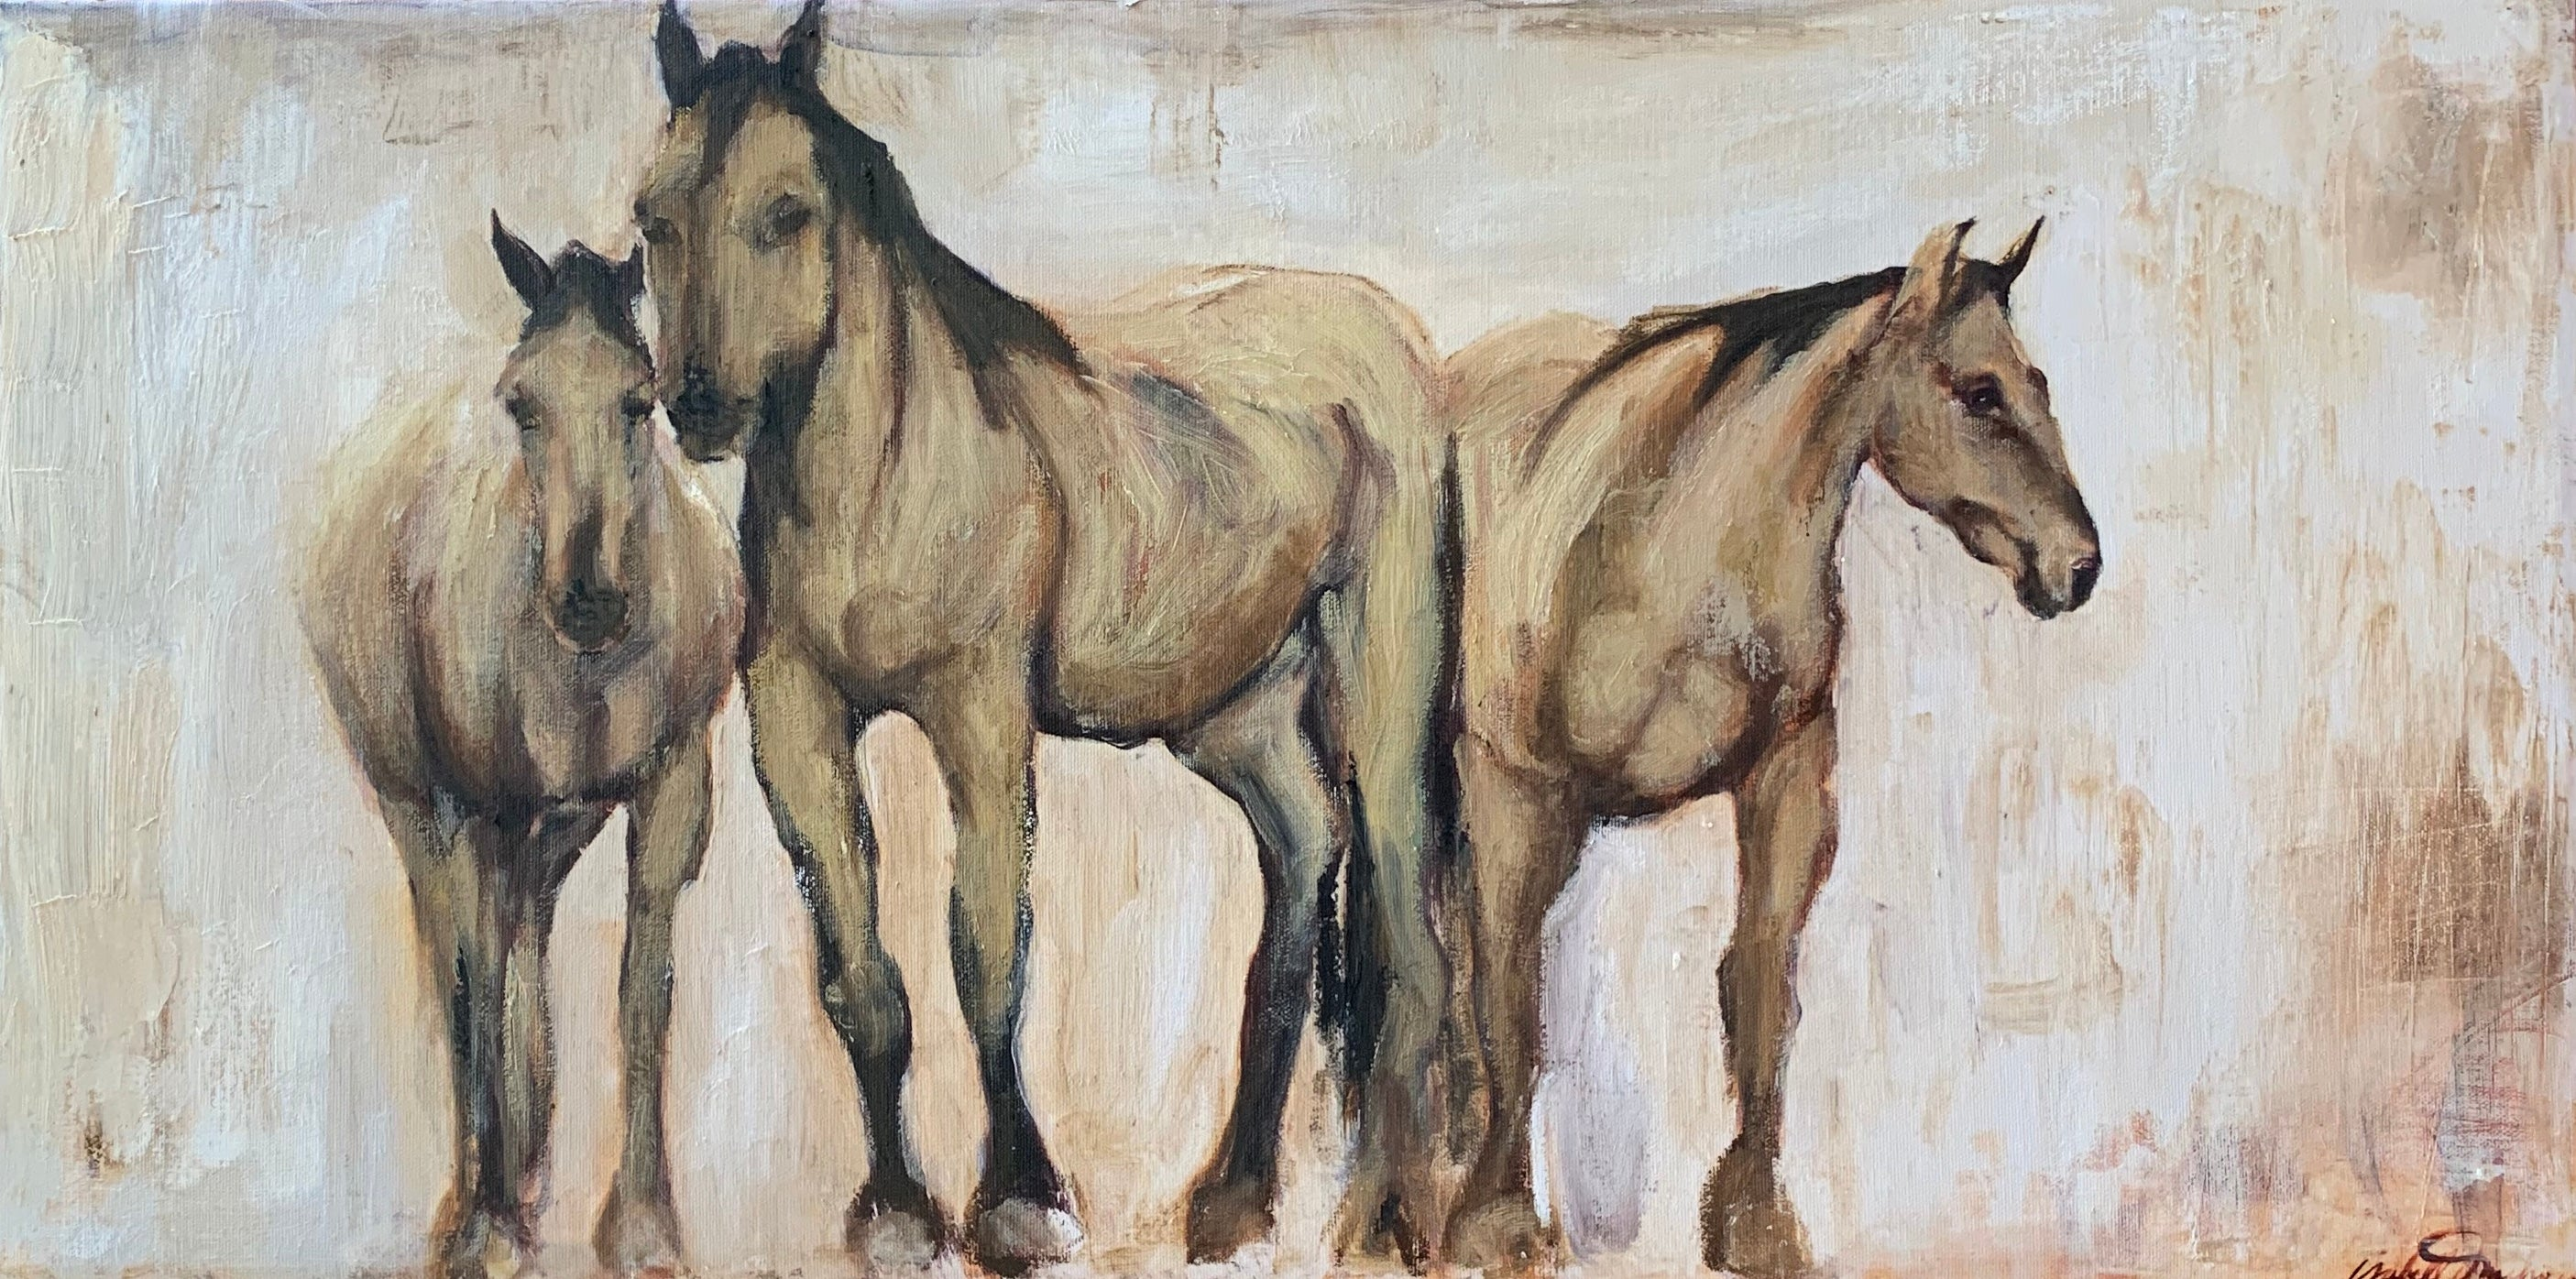 The buckskin wild Kiger horses of the Steens Mountain, three horses congregating not far from the larger herd, watching me, watching them. A statement piece for any space.